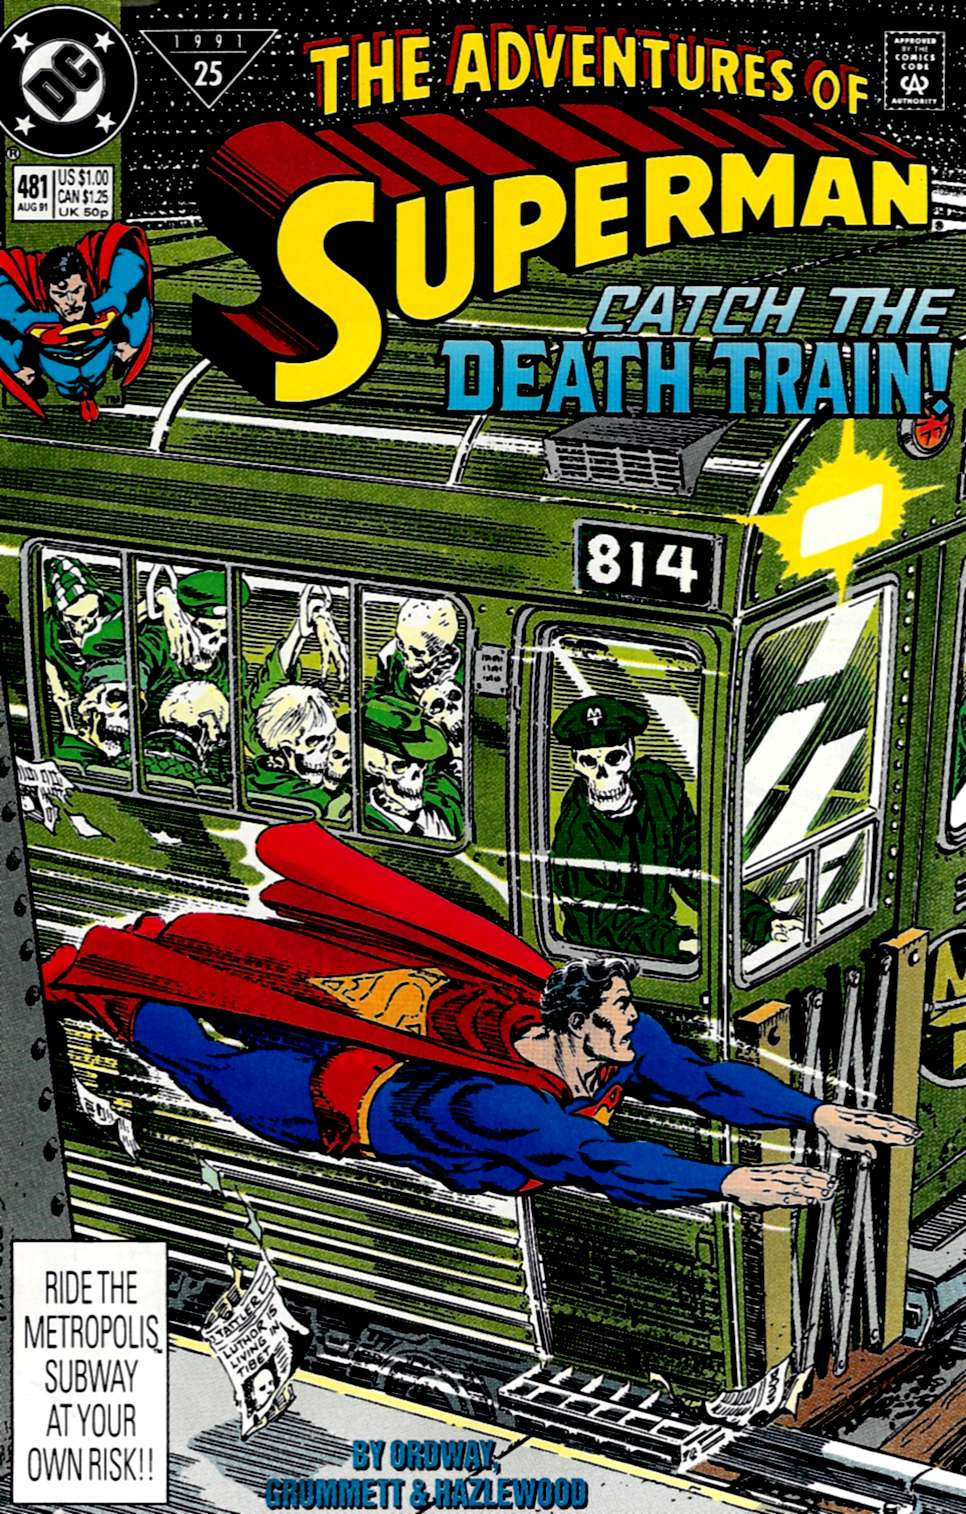 Adventures of Superman (1987) 481 Page 1